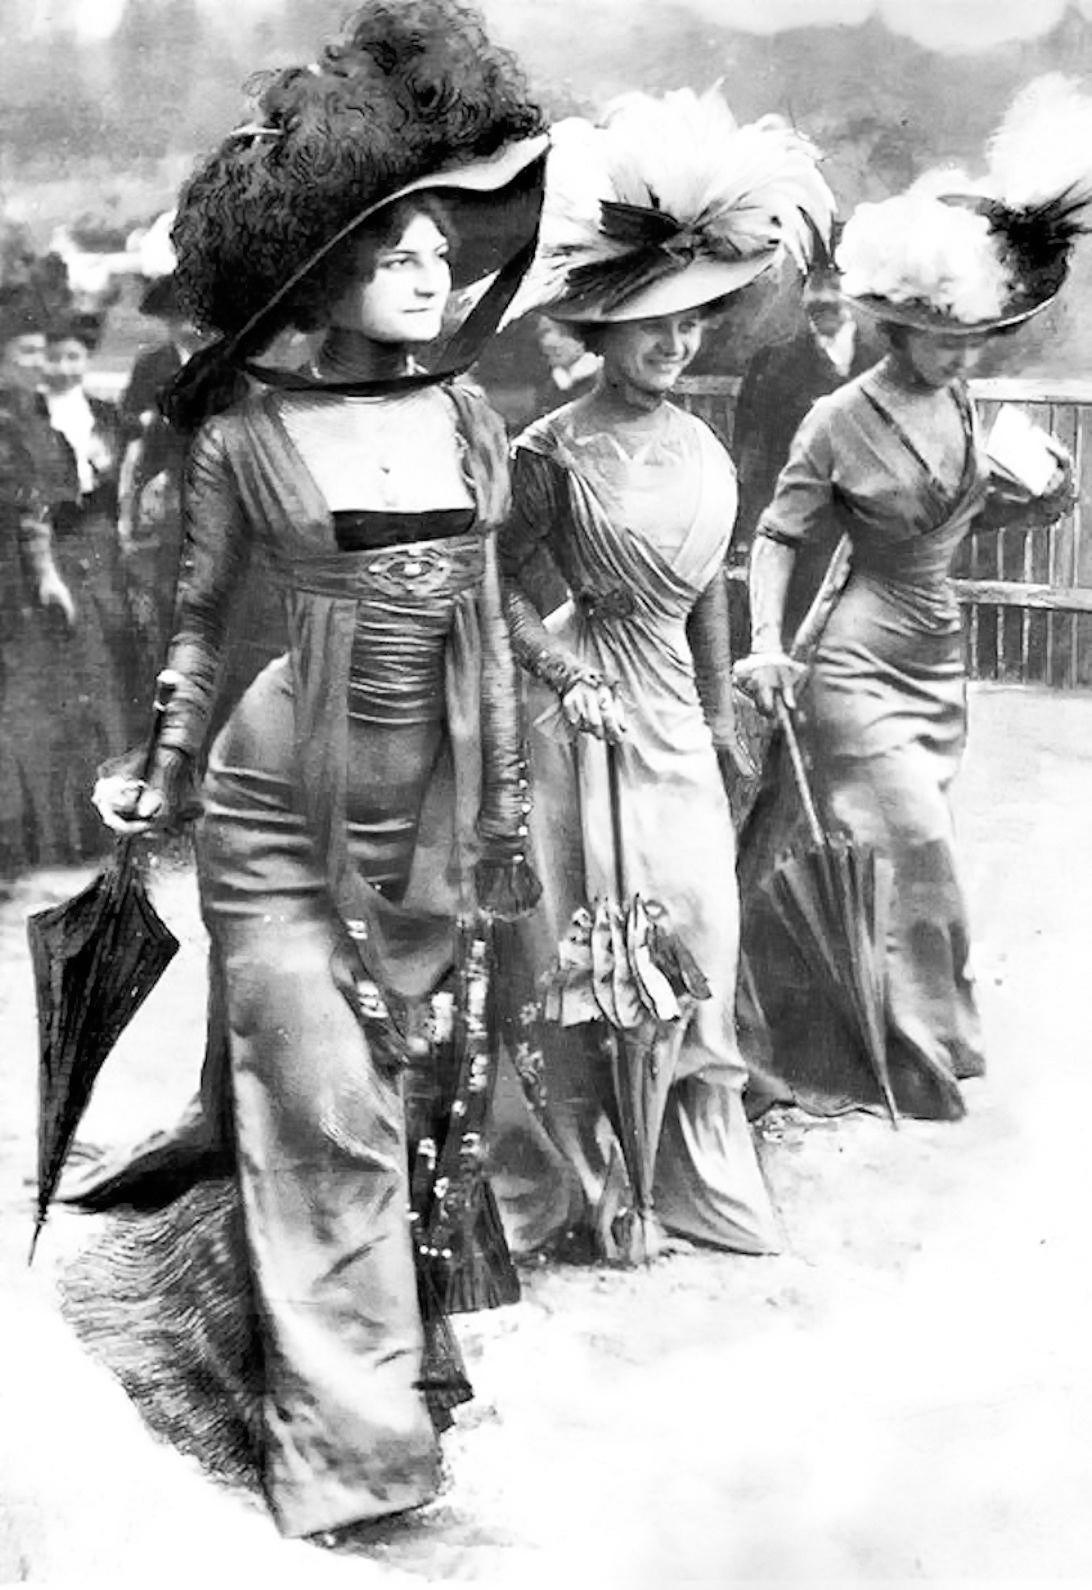 Ladies at the Hippodrome de Longchamp, Paris 1908